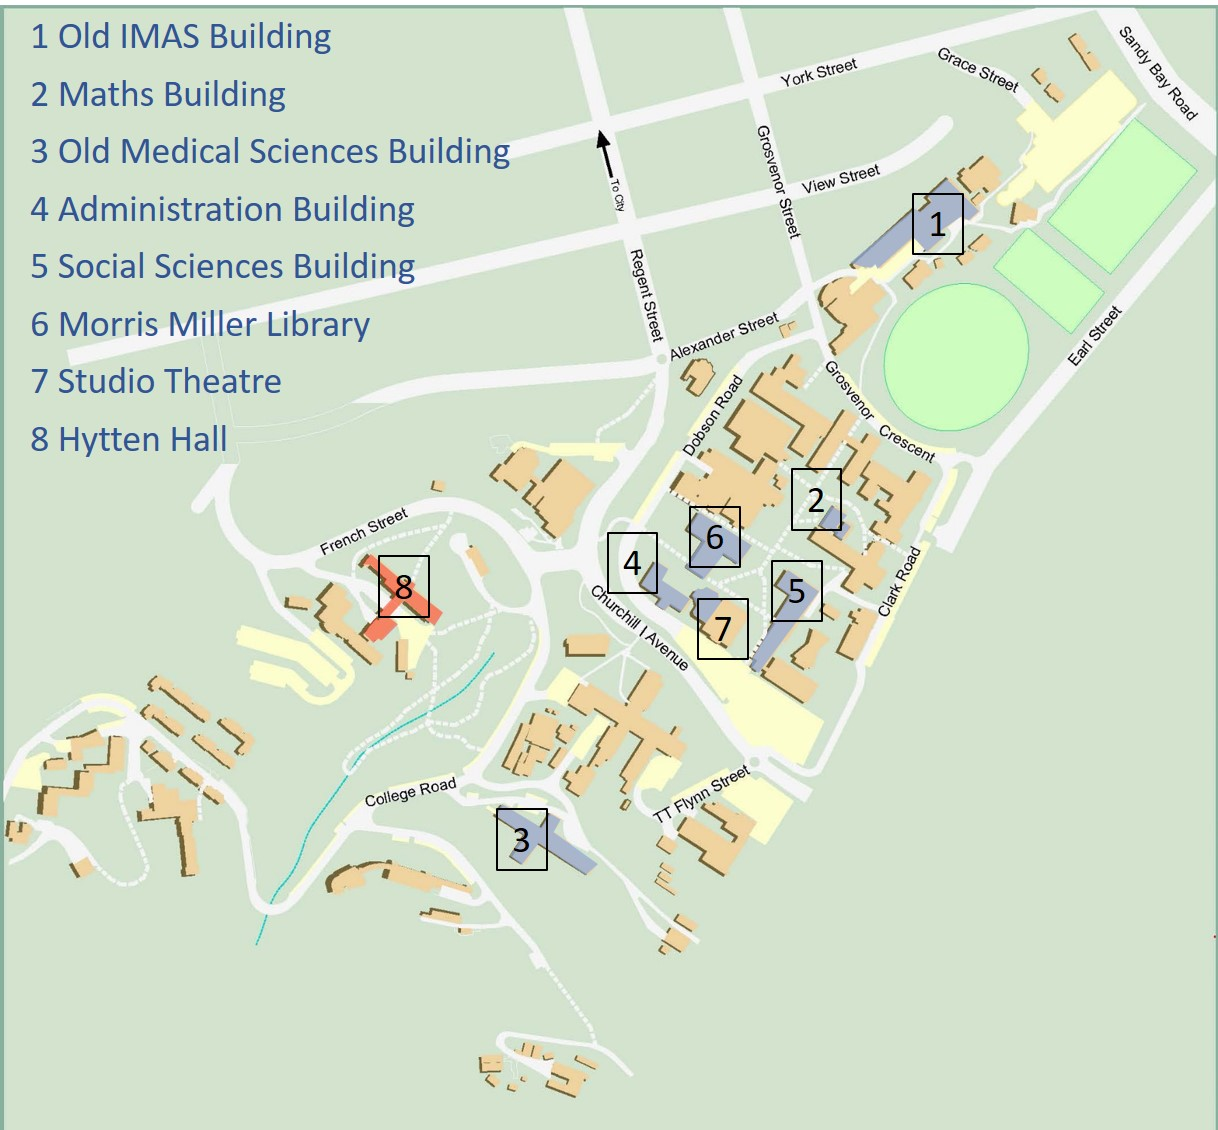 Map showing location of buildings mentioned on this web page